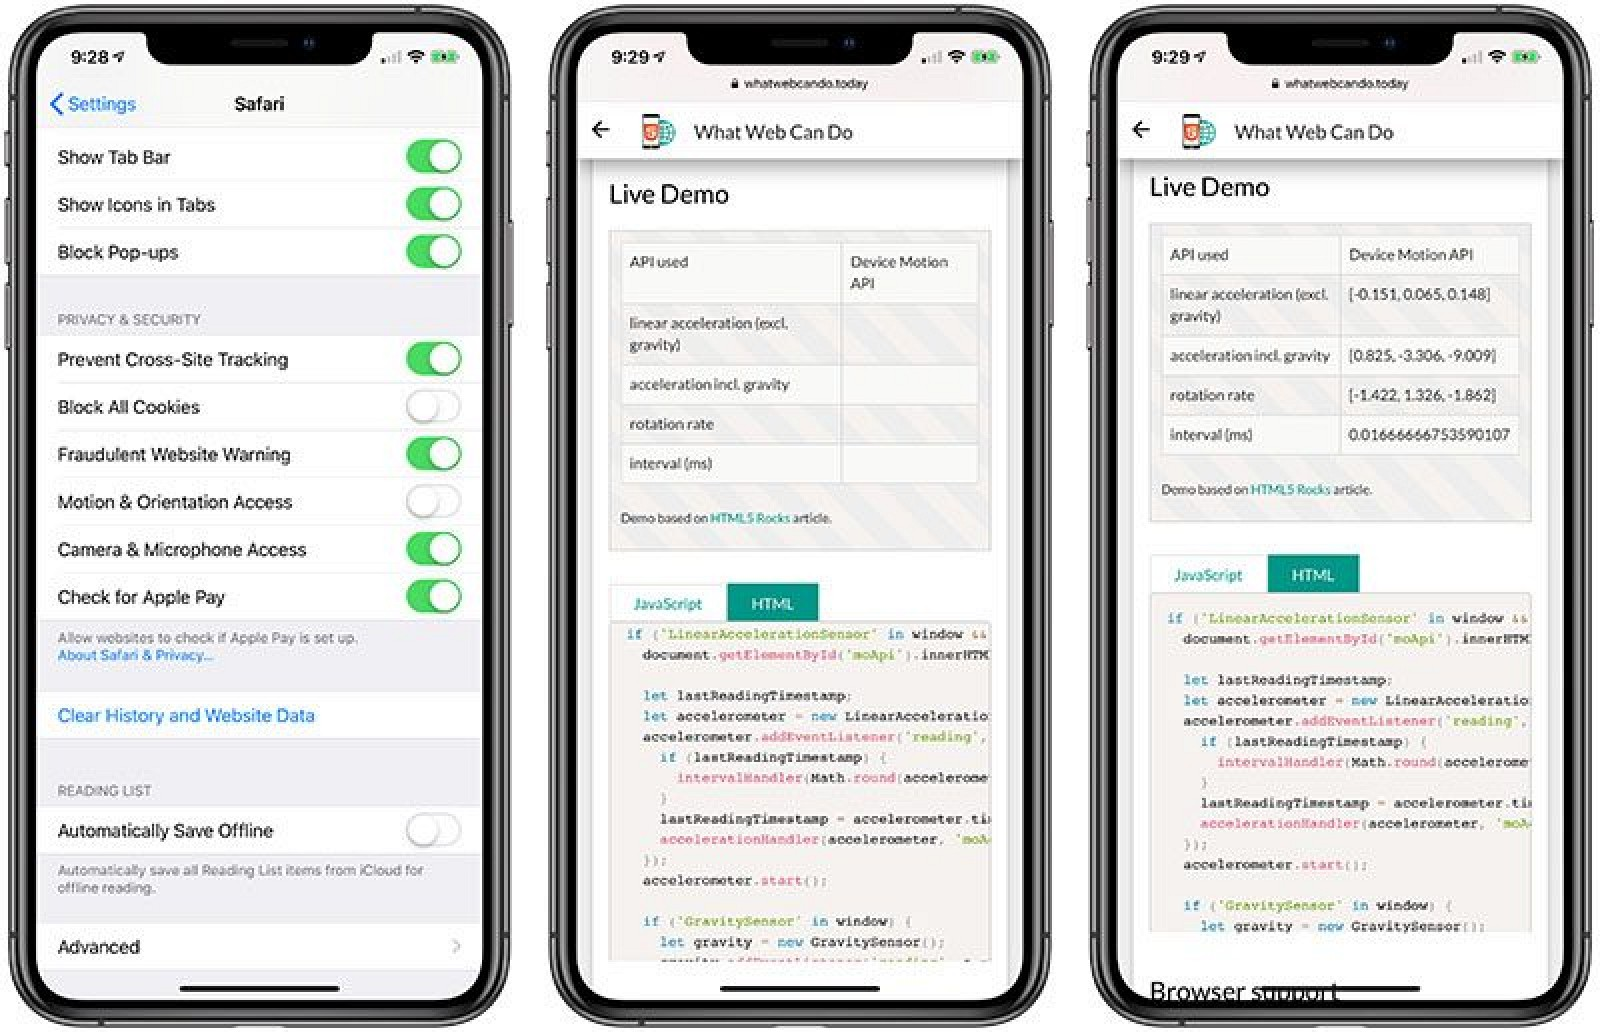 Apple to Limit Accelerometer and Gyroscope Access in Safari on iOS 12.2 for Privacy Reasons